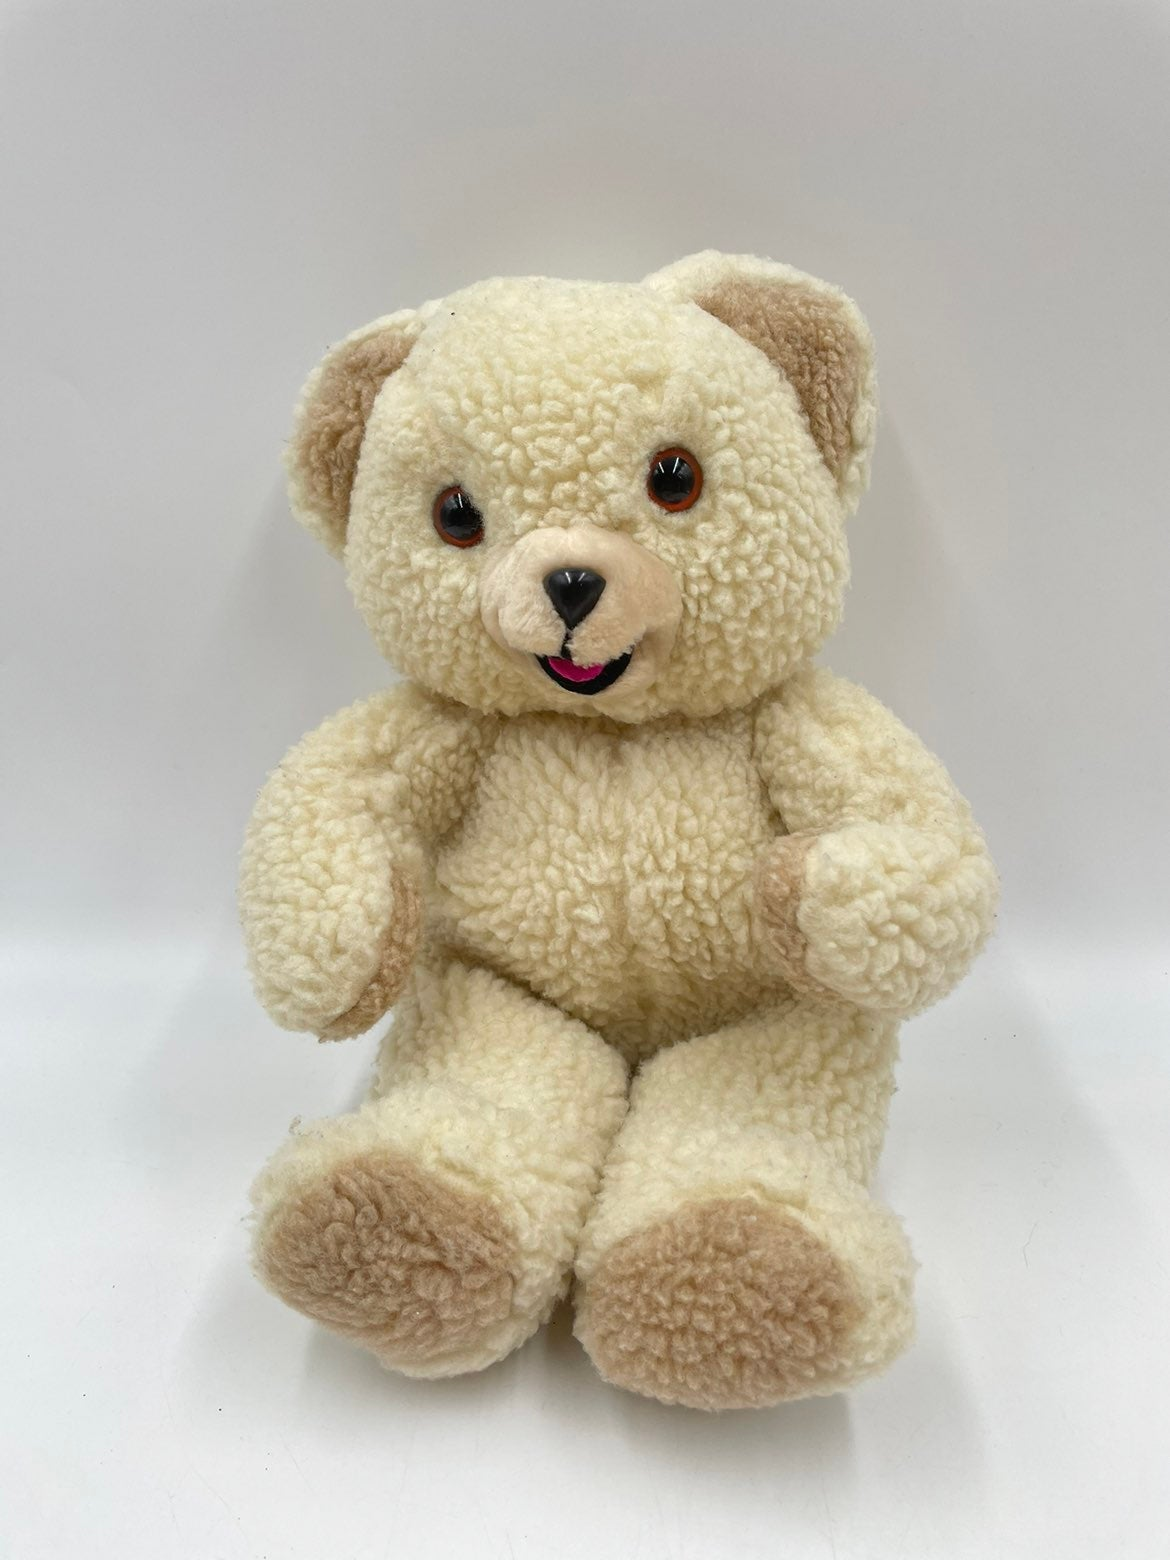 Vintage 1985 Lever Brothers Snuggle Bear